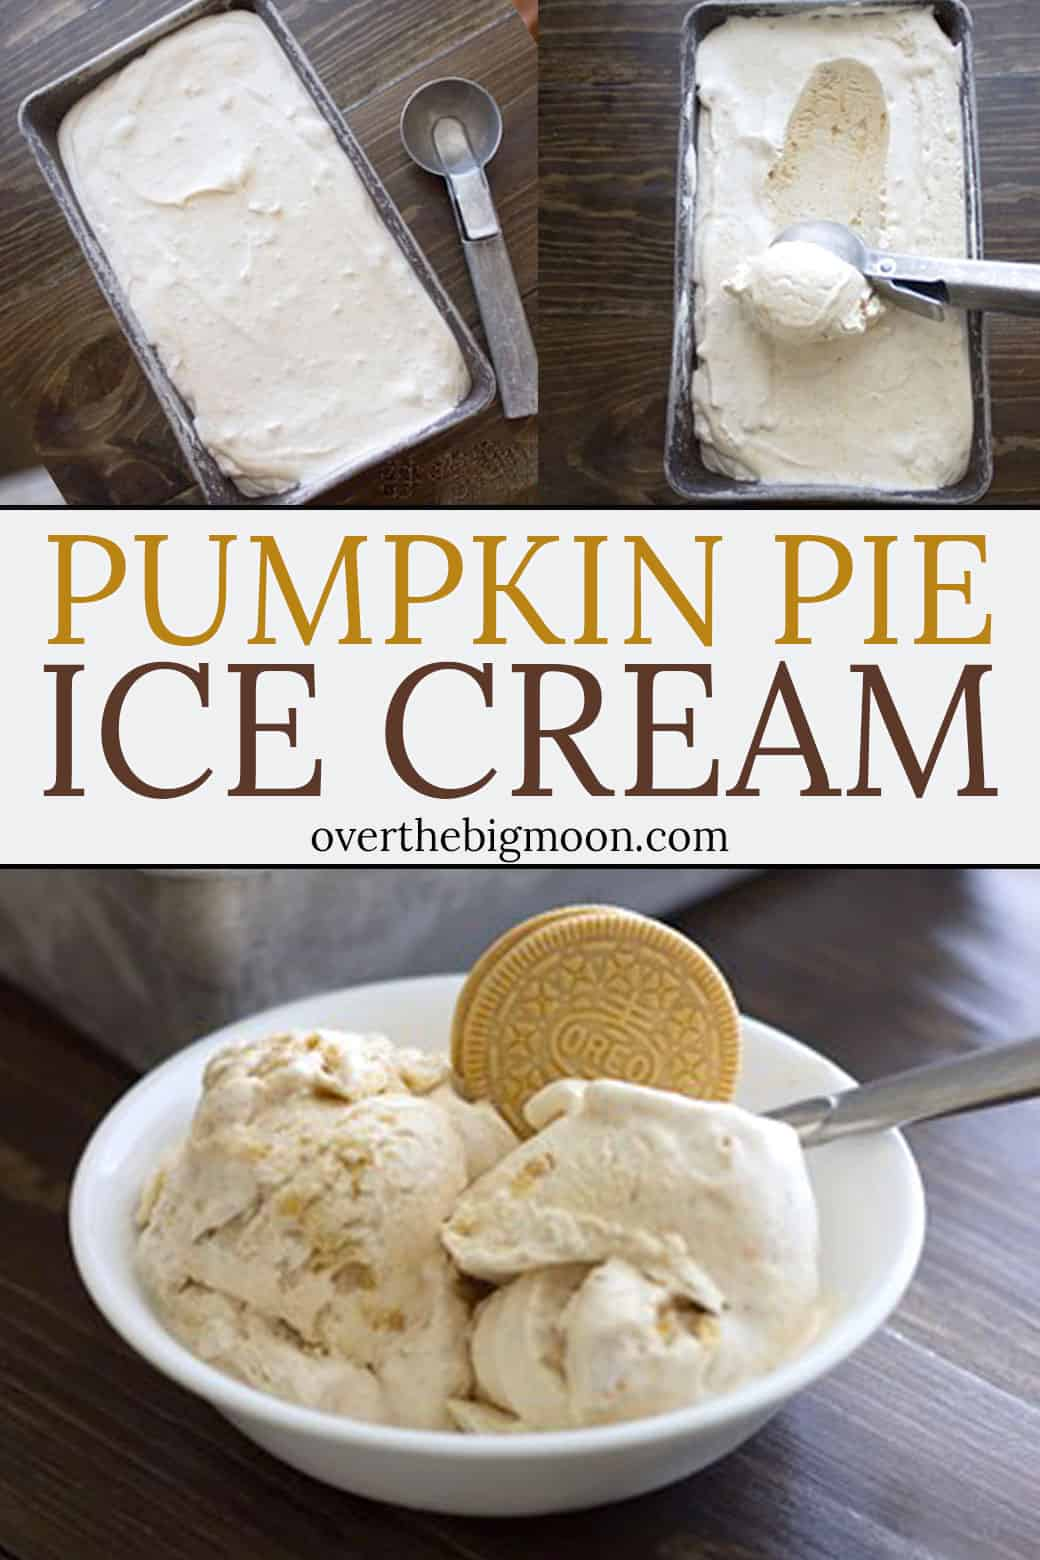 This Pumpkin Pie Ice Cream is the perfect Fall dessert! Best part is that you don't need an ice cream maker to make this! Recipe at overthebigmoon.com!